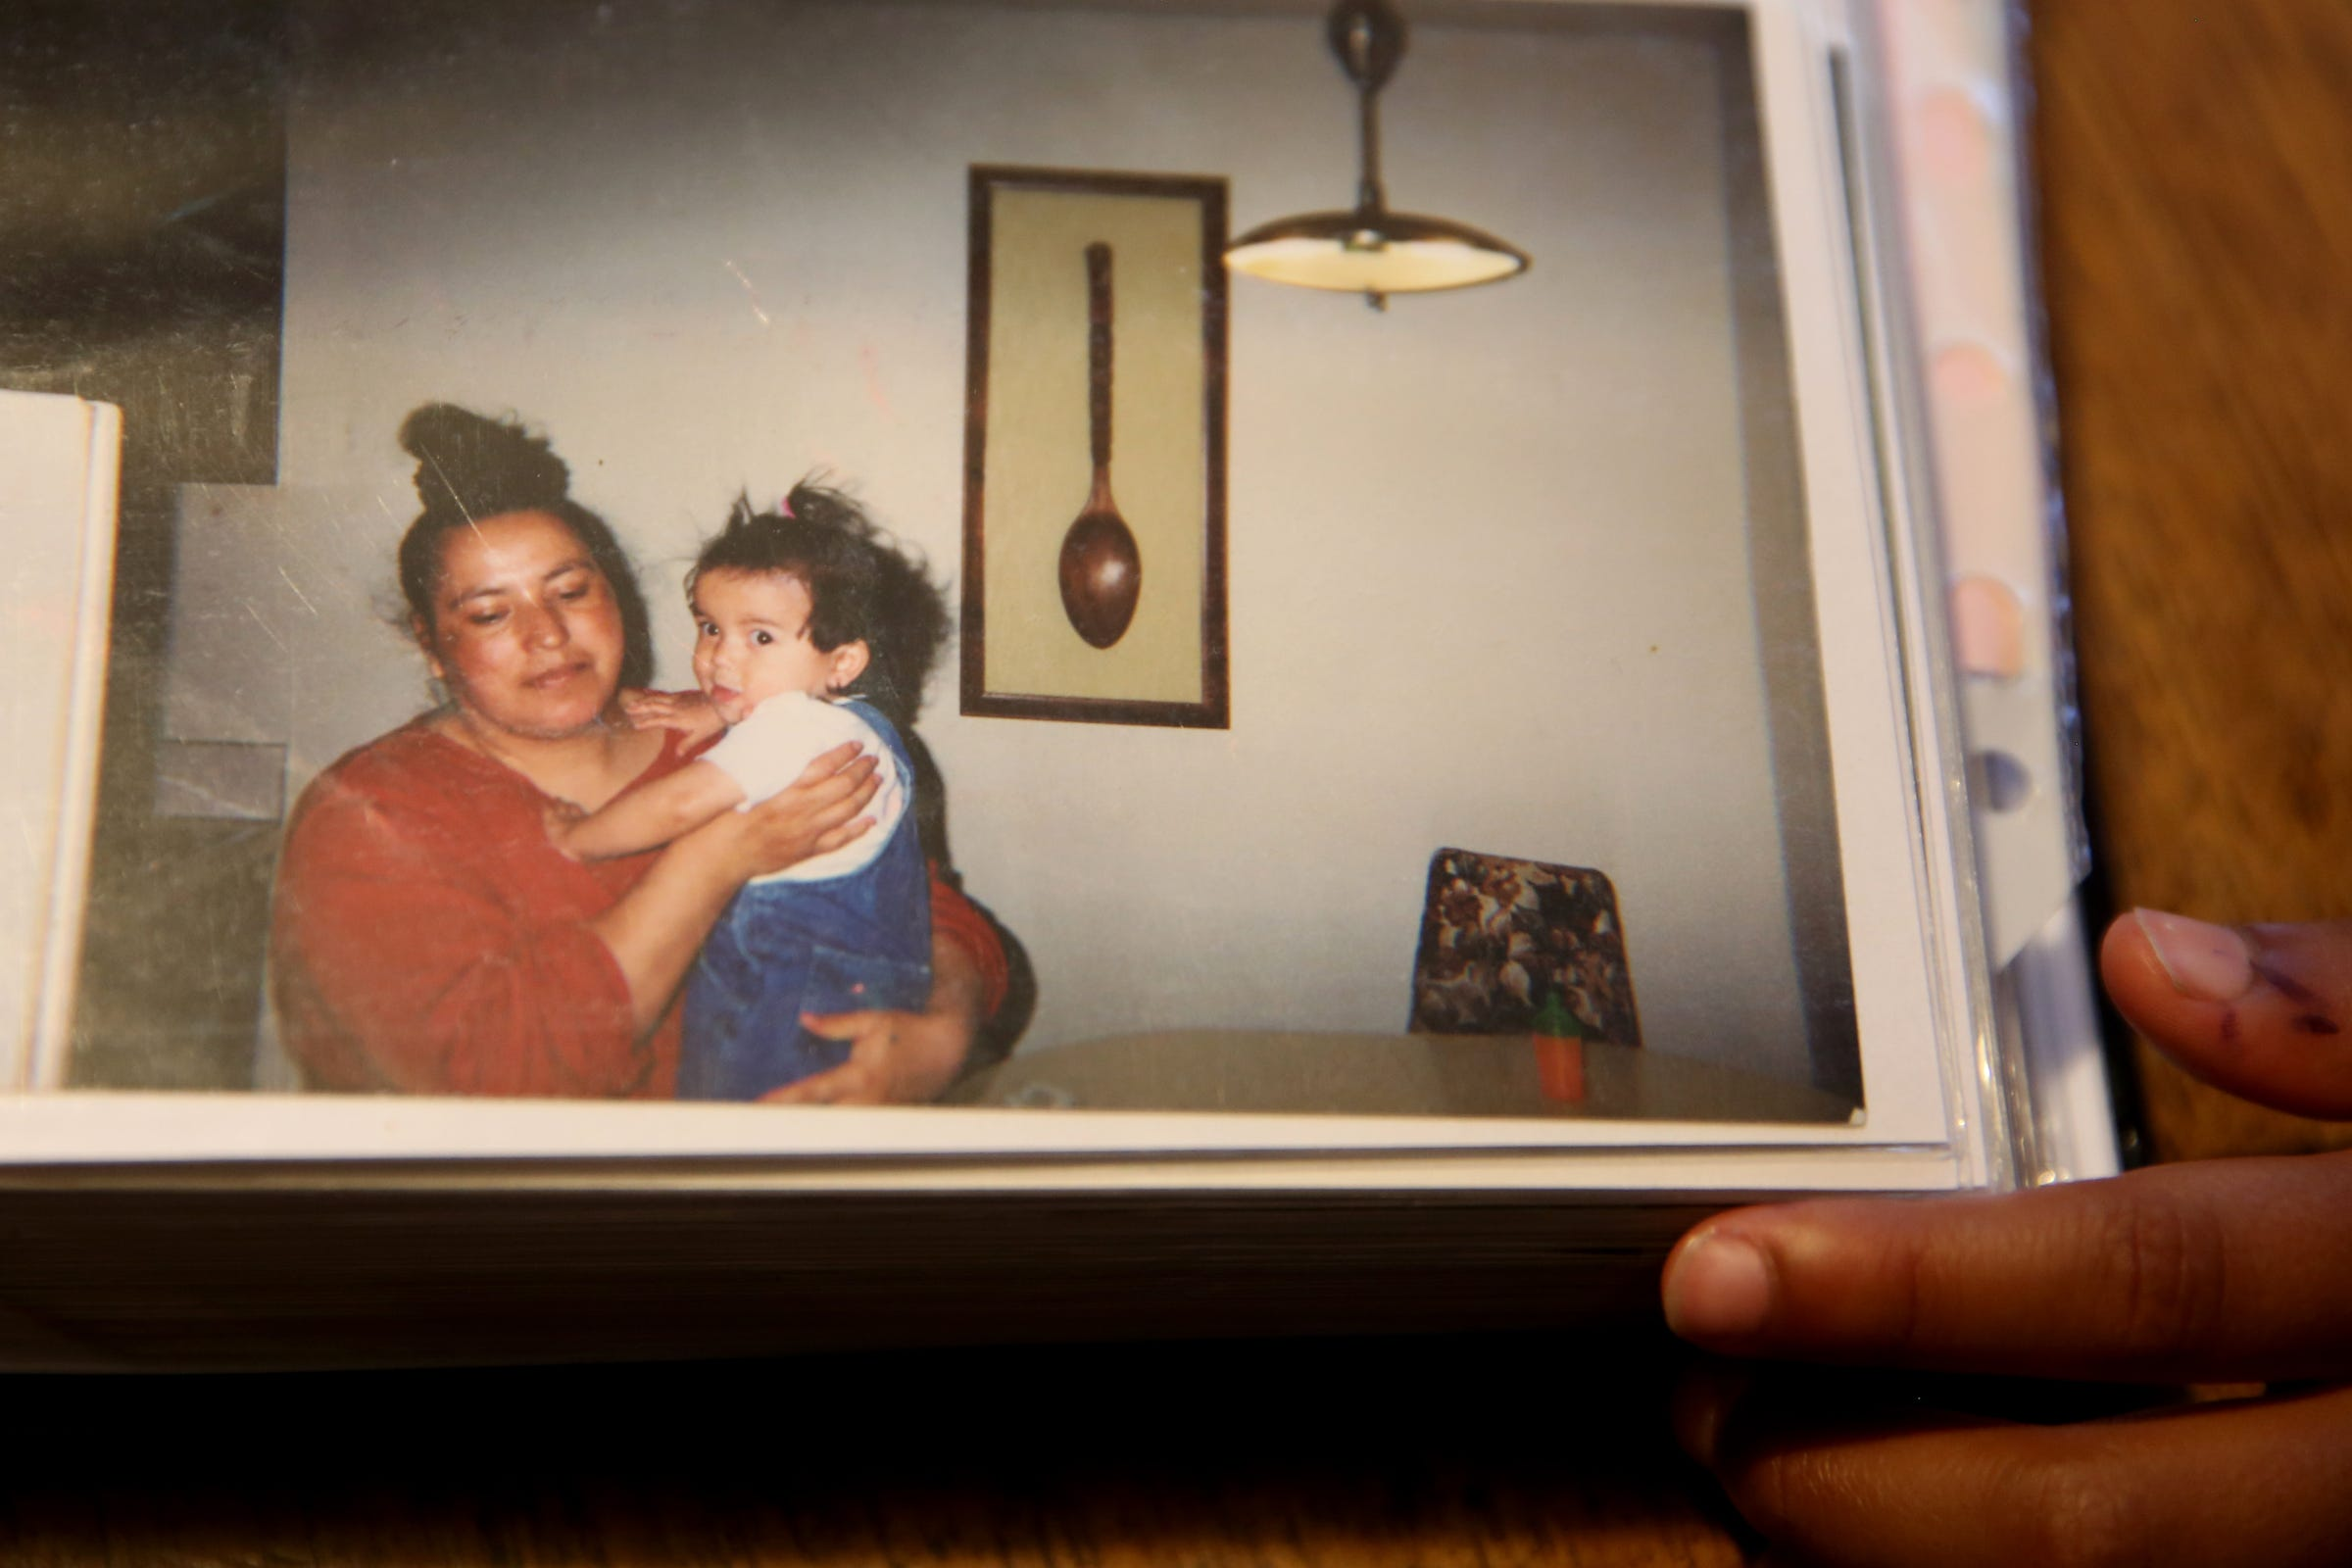 A photo of Erika Figueroa, now 18, being held by her mother, Maria, when she was young. Maria said all she wants for her children is to see their dreams come true.